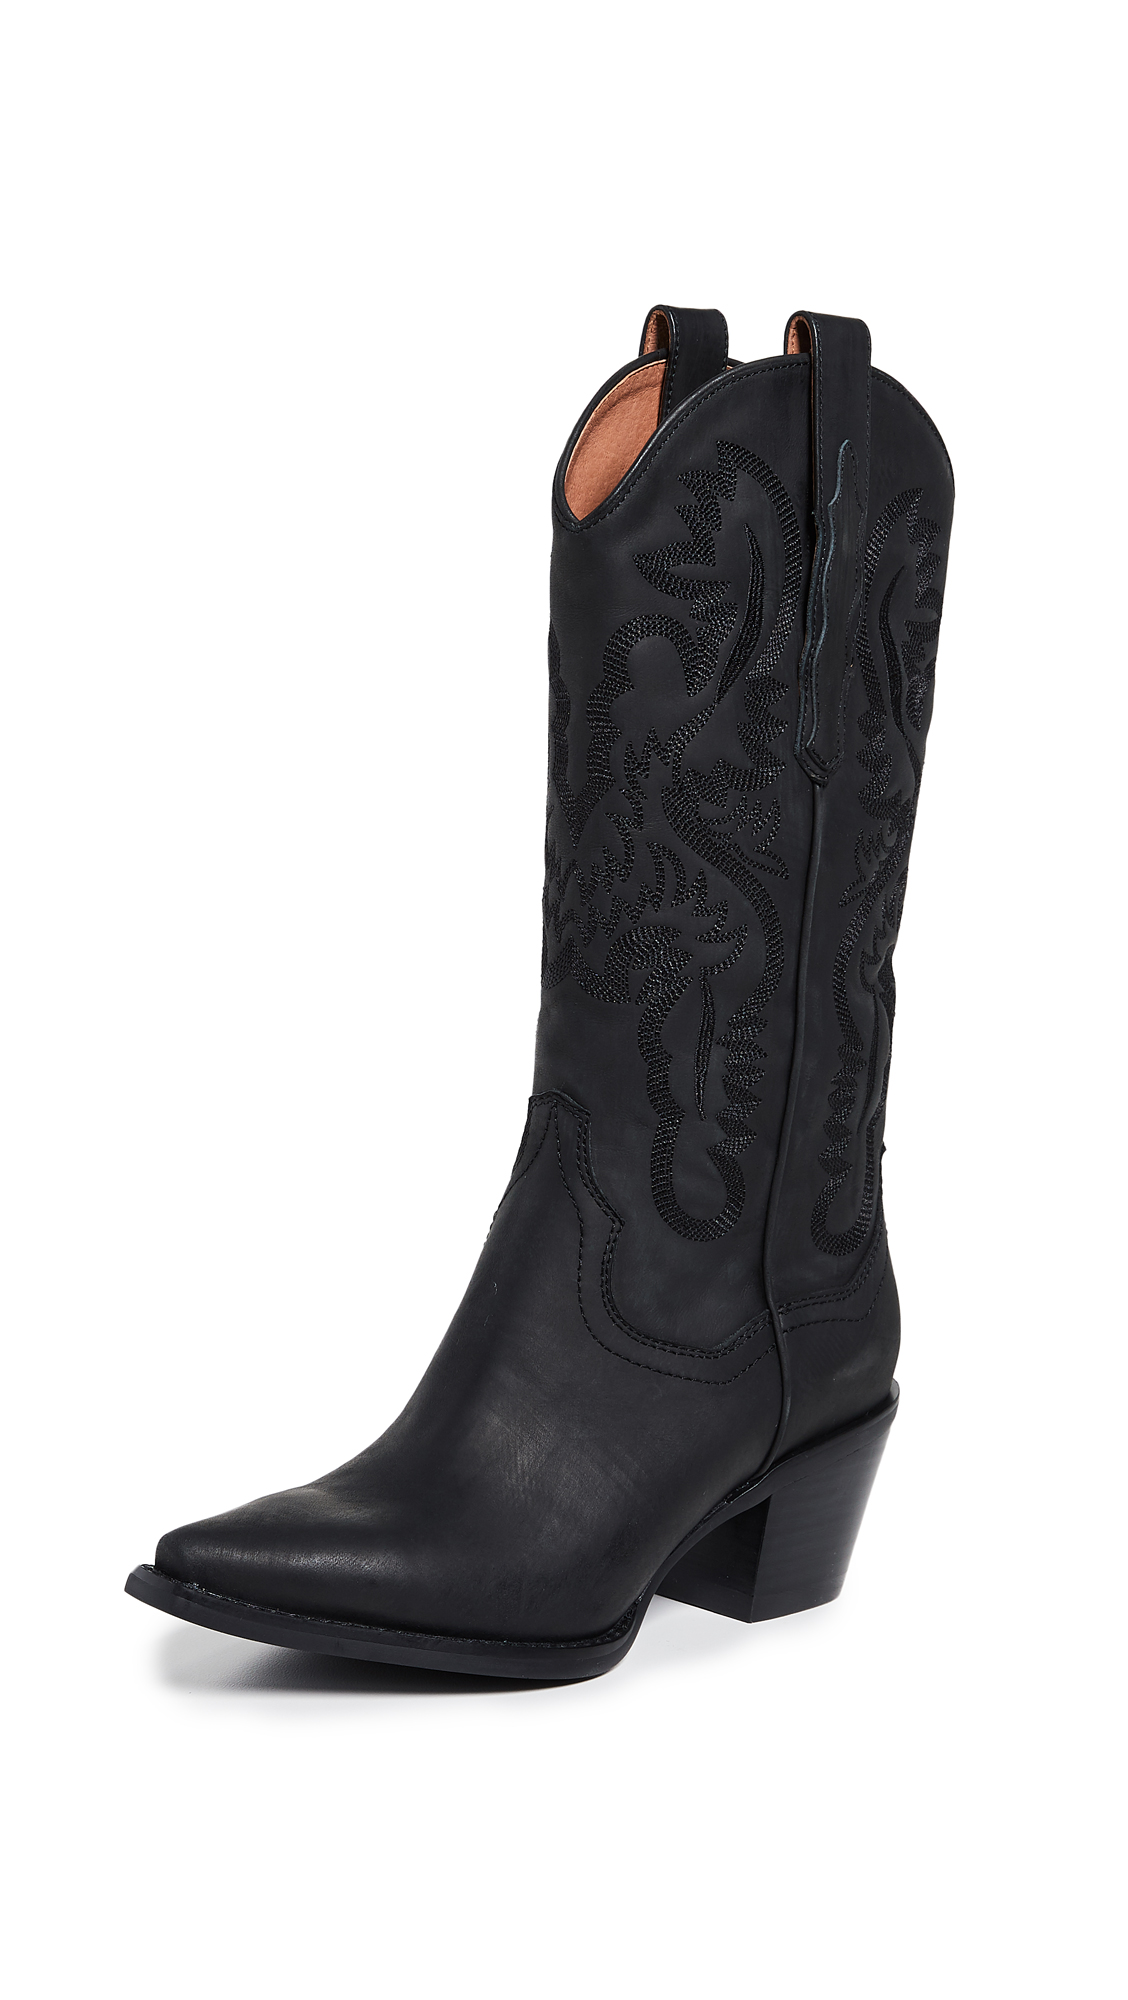 Photo of Jeffrey Campbell Dagget Western Boots - buy Jeffrey Campbell footwear online